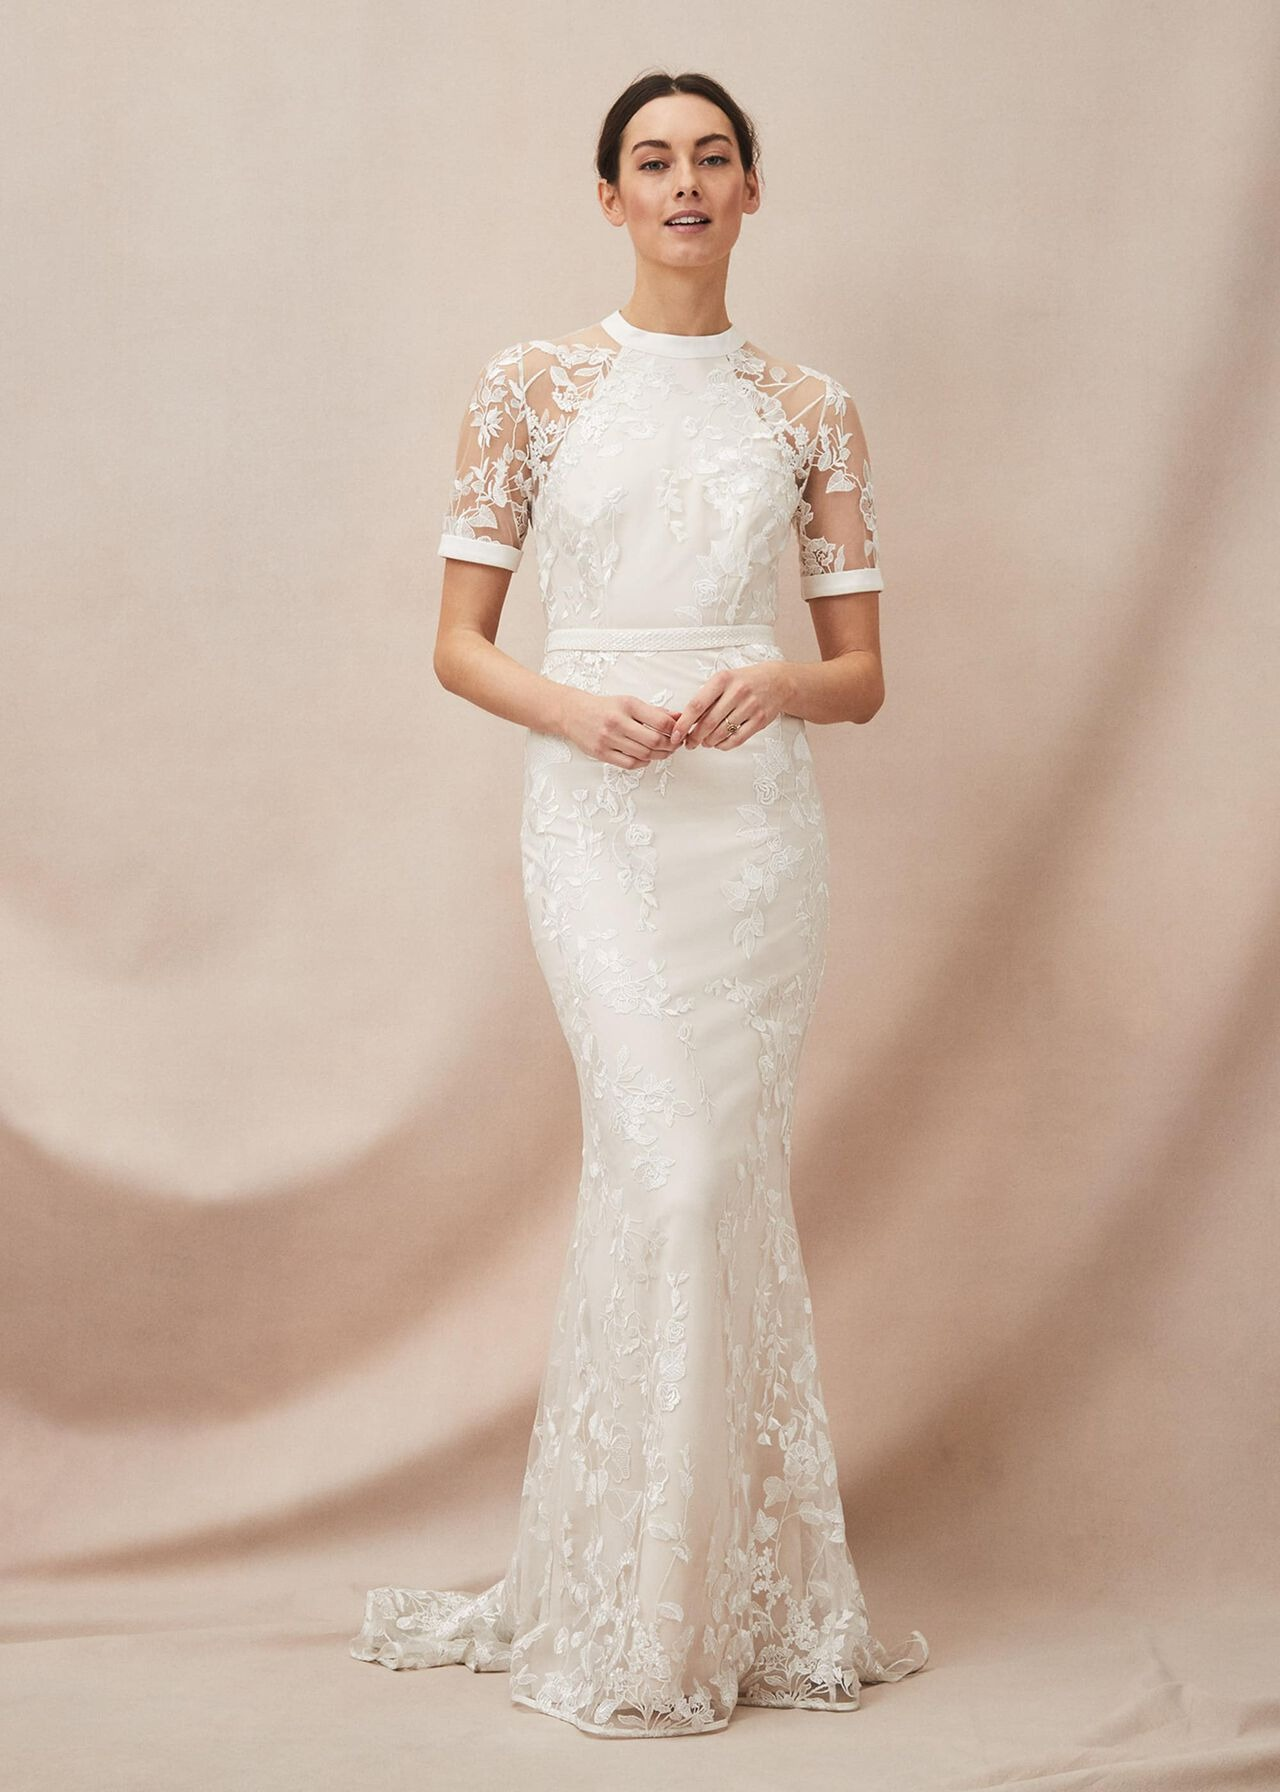 poppy embroidered online wedding dress with fitted skirt and short sheer sleeves